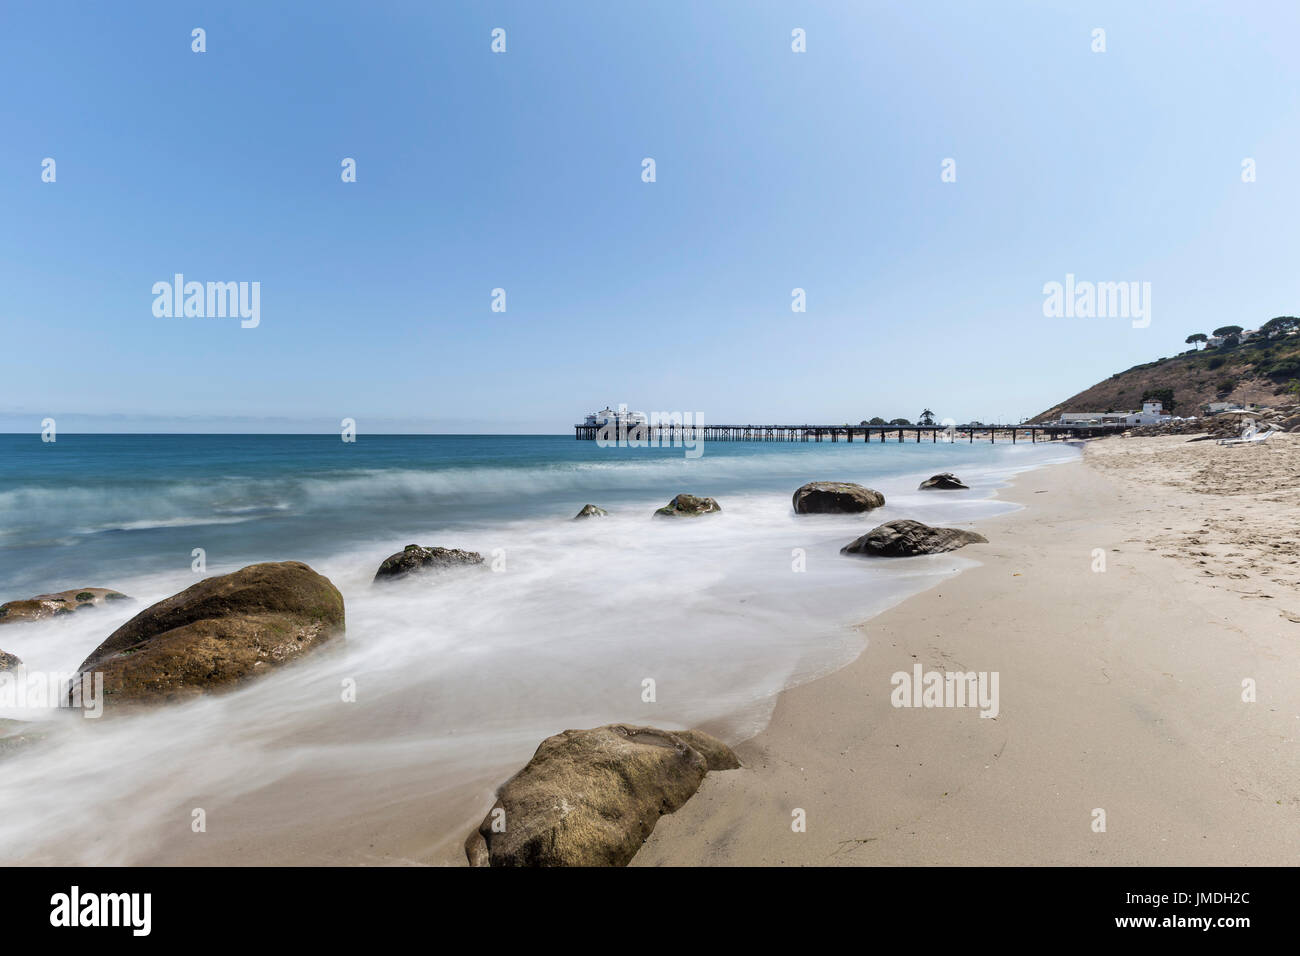 Malibu Pier beach with motion blur surf near Los Angeles in Southern California. - Stock Image